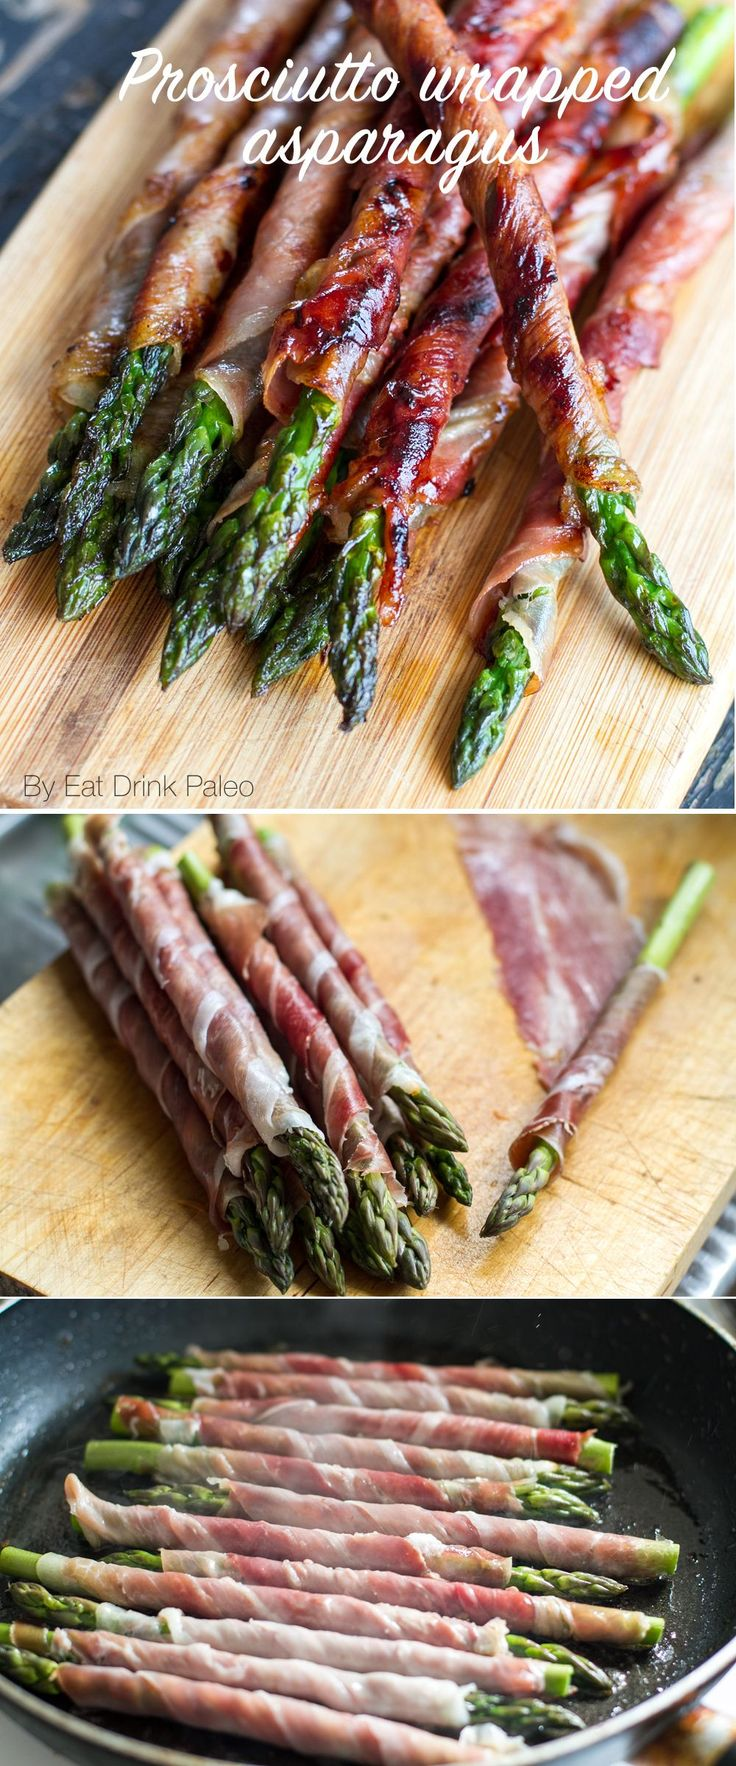 One of my favourite grilled asparagus recipes is prosciutto wrapped asparagus spears. Great finger food for parties and a fun and easy way to cook asparagus.